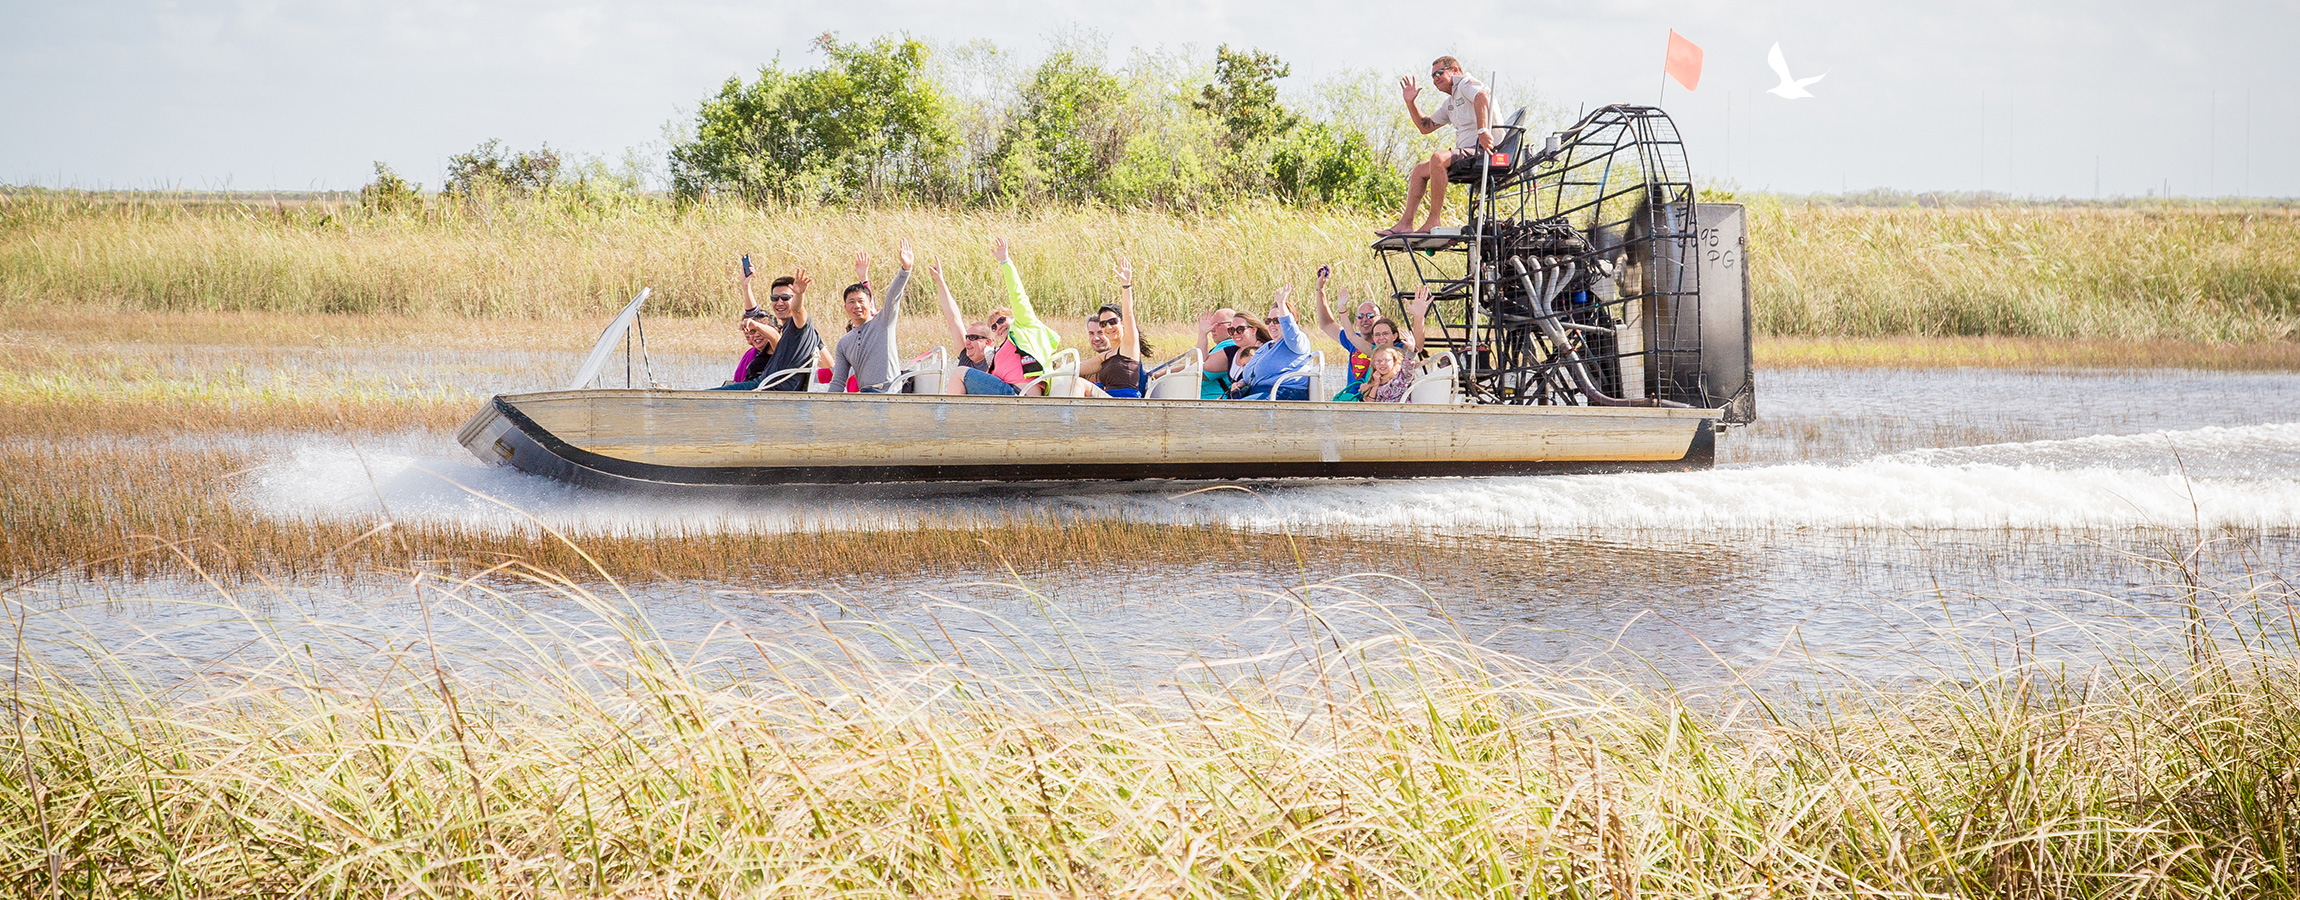 Florida Airboat Rides At Gator Park Everglades Airboat Tours